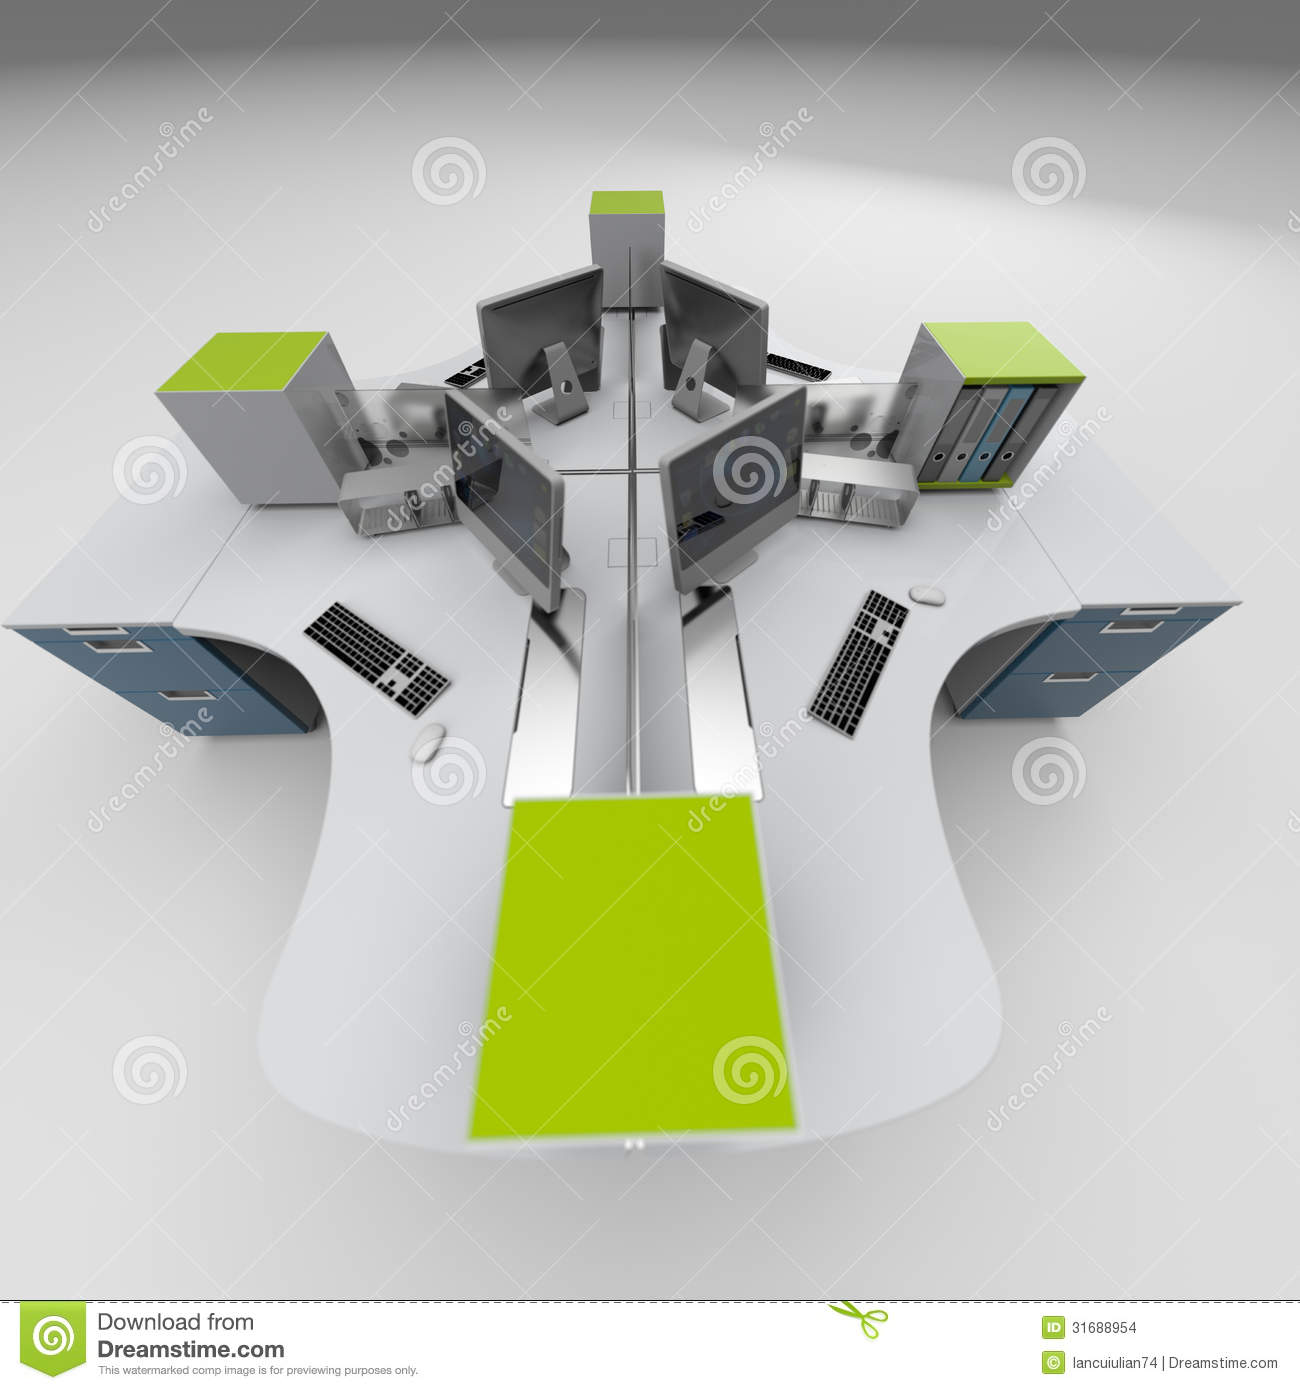 Office furniture design rendering studio stock images for Table design graphic